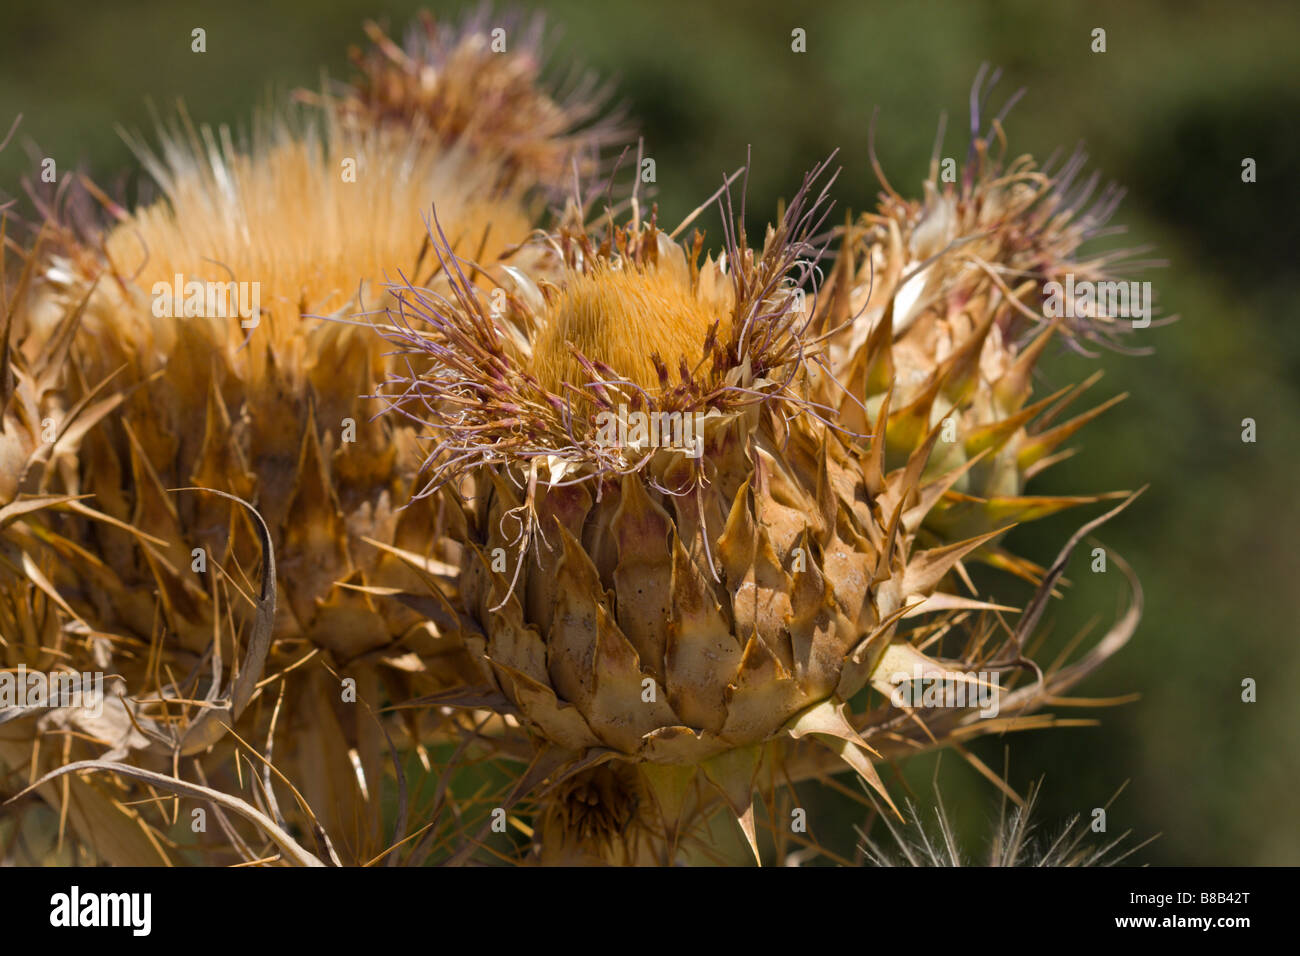 thistle dry flower - Stock Image